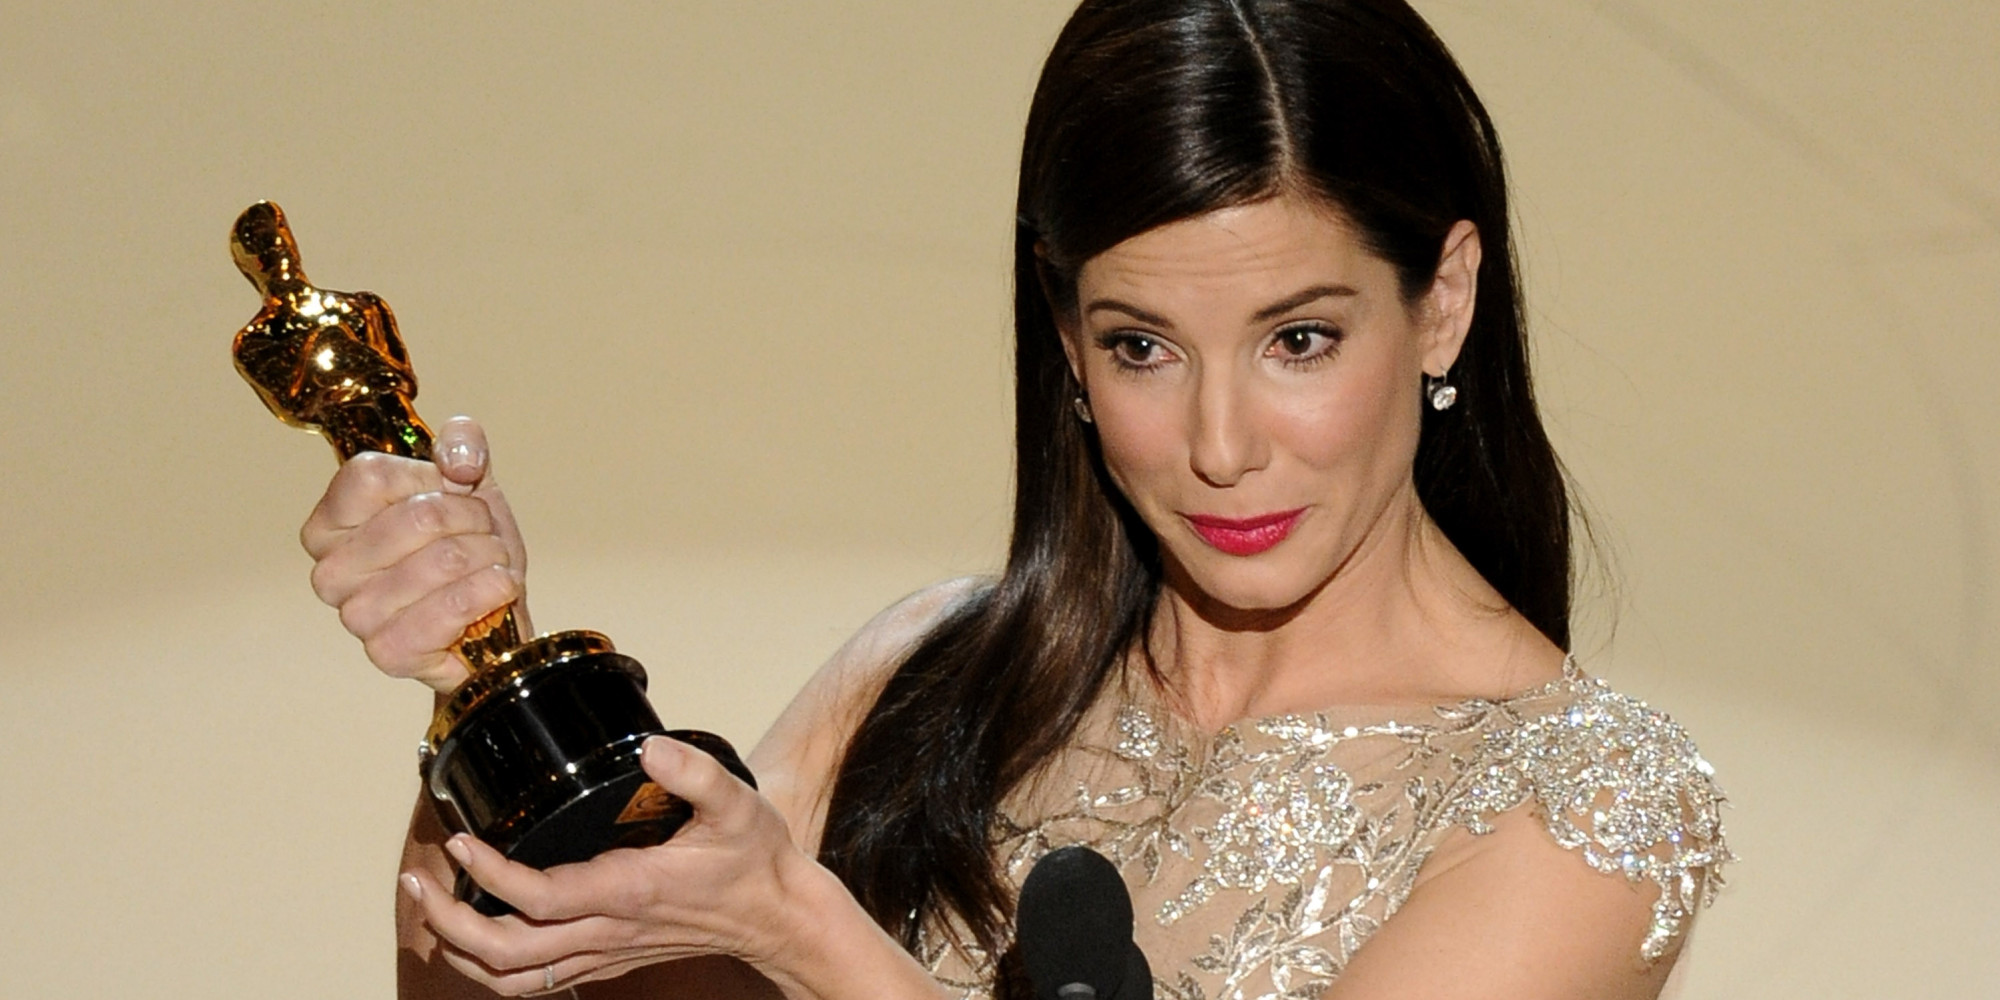 http://i.huffpost.com/gen/3891246/images/o-SANDRA-BULLOCK-OSCAR-THE-BLIND-SIDE-facebook.jpg